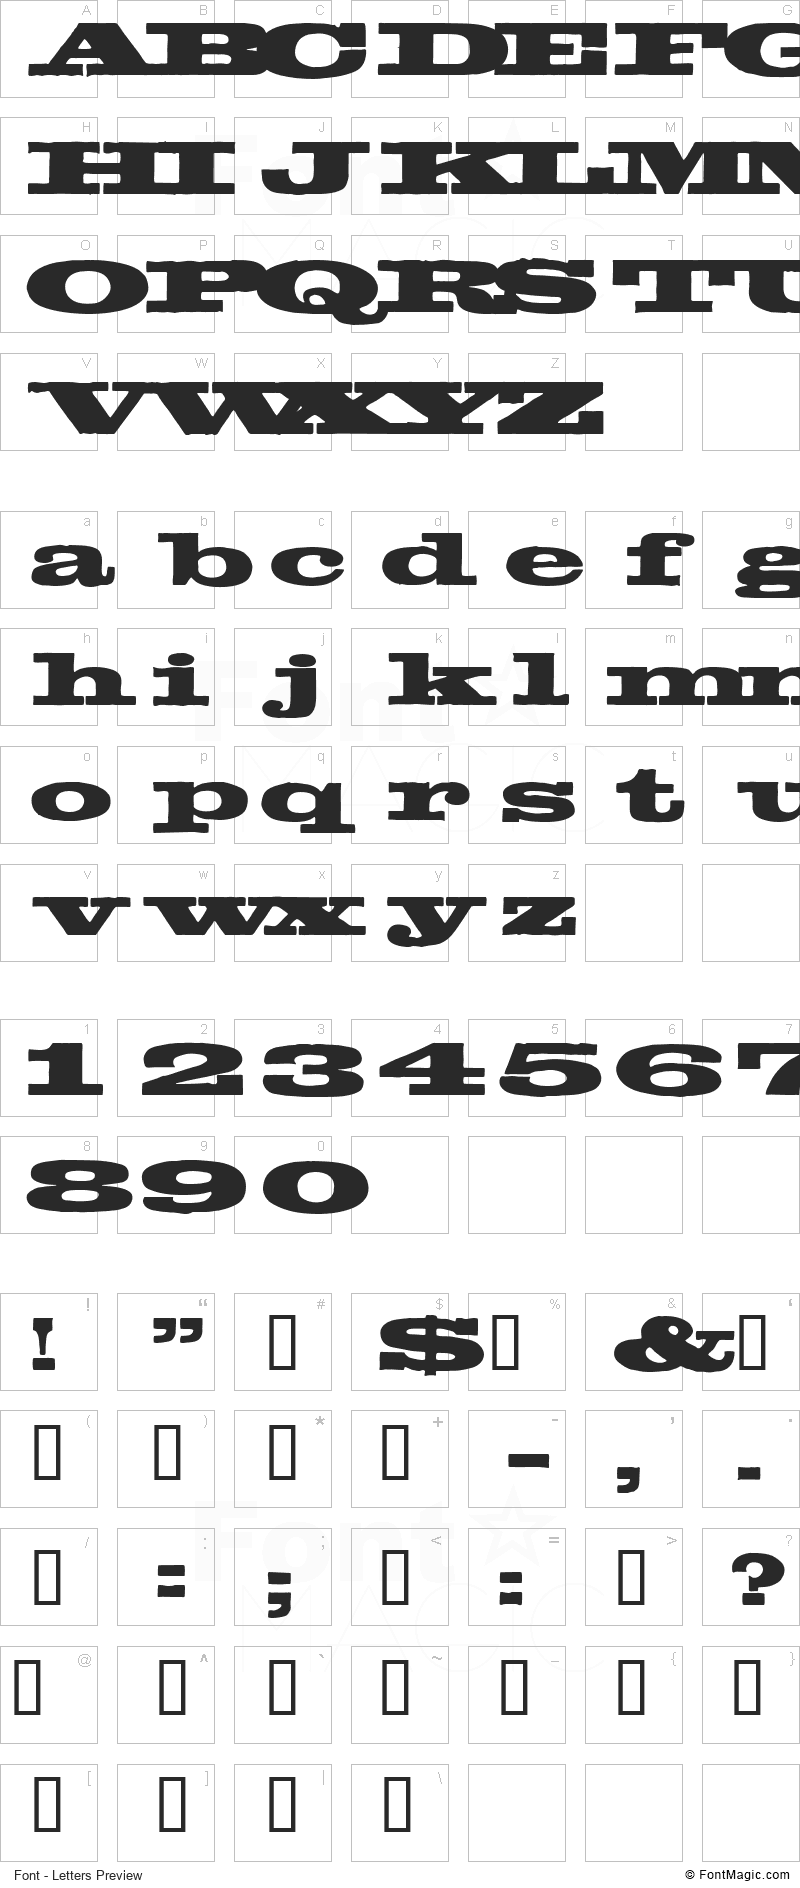 Egyptientto2 Font - All Latters Preview Chart